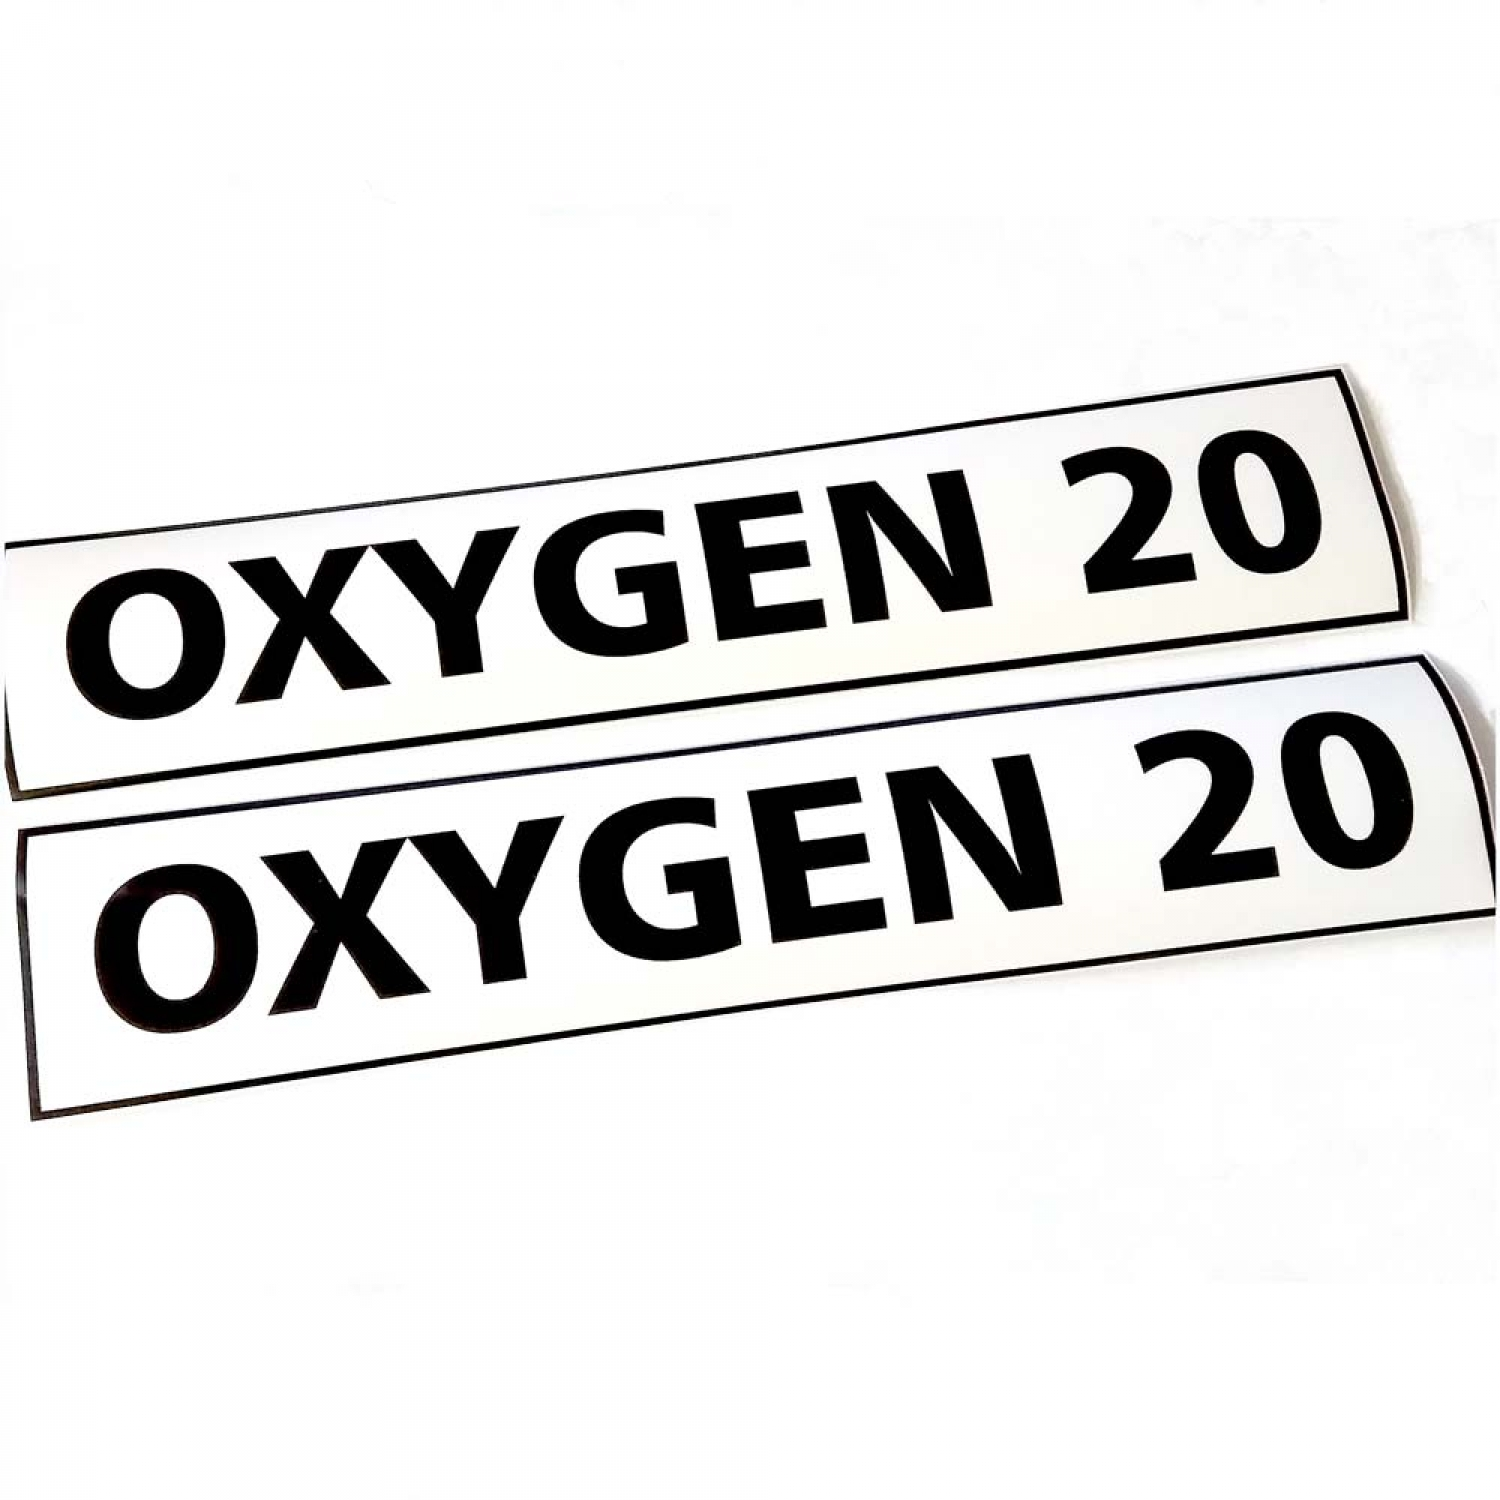 Oxygen Mod Sticker Scuba Diving Gas Cylinder Deco Tank